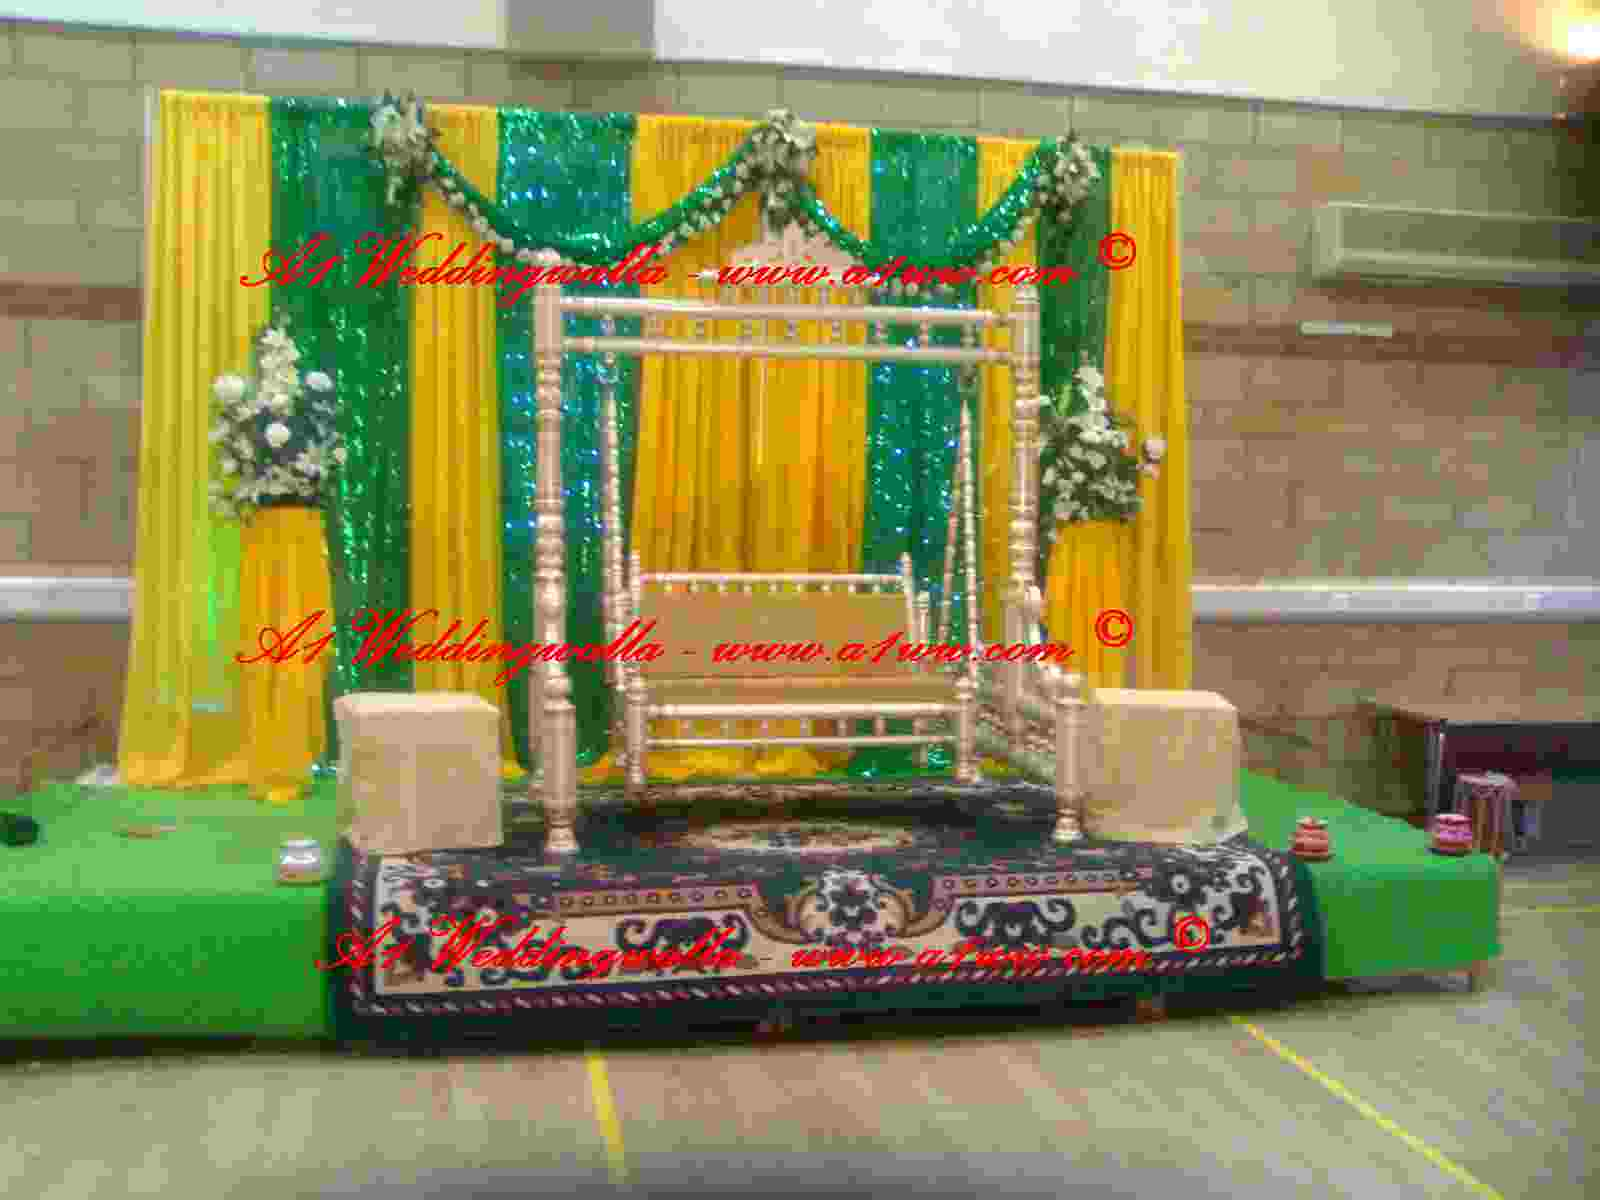 Ghosia caterers flowers decoration mehndi stage for Muslim wedding home decorations